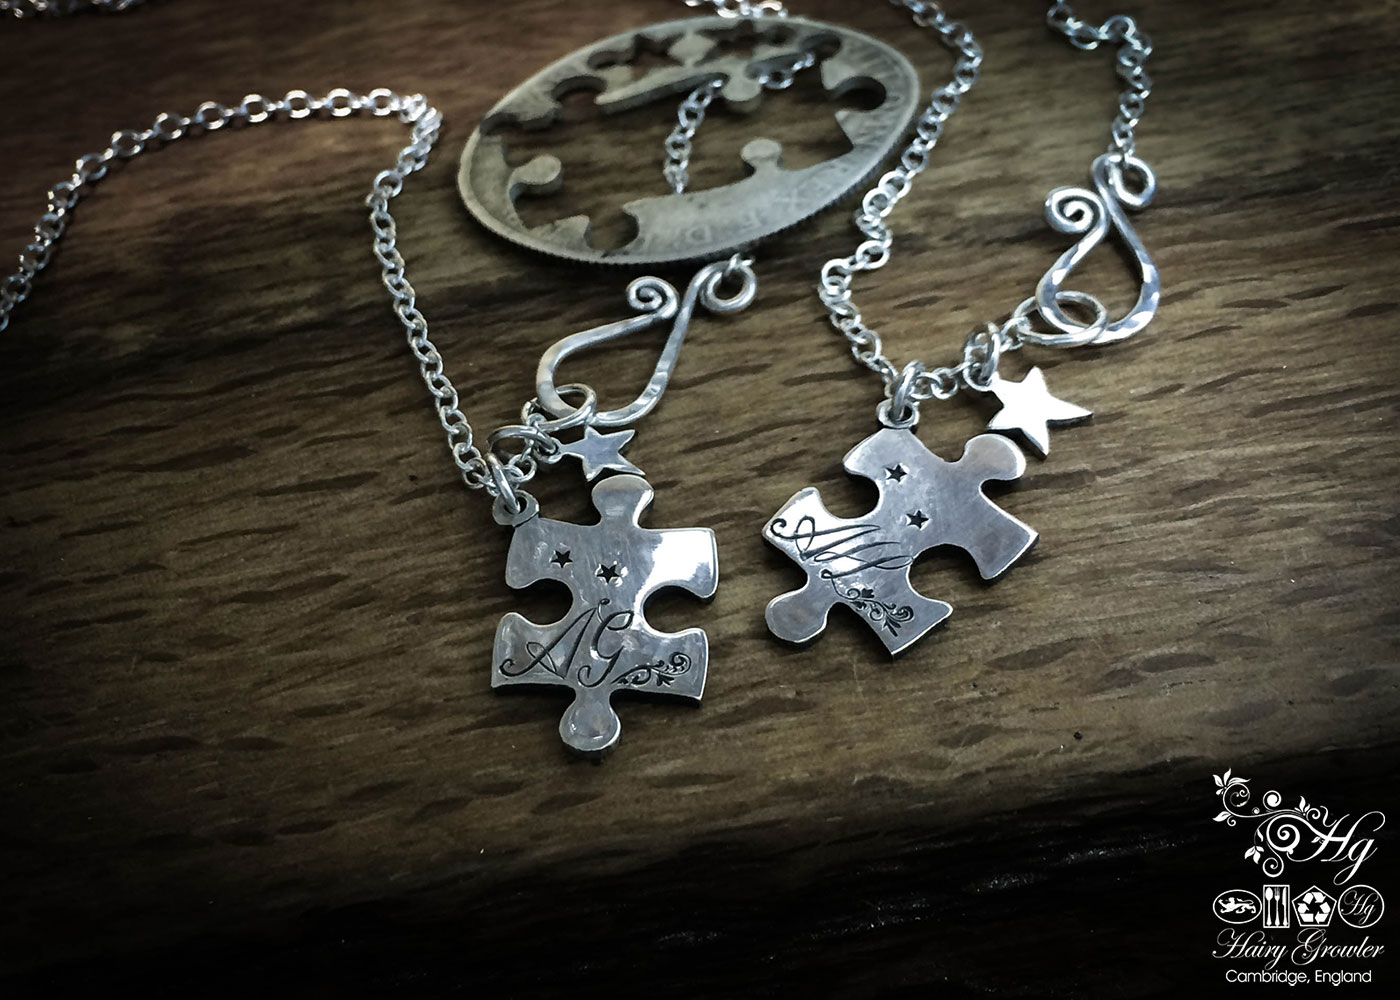 Jigsaw necklace Handmade and repurposed jigsaw pieces necklace silver coin